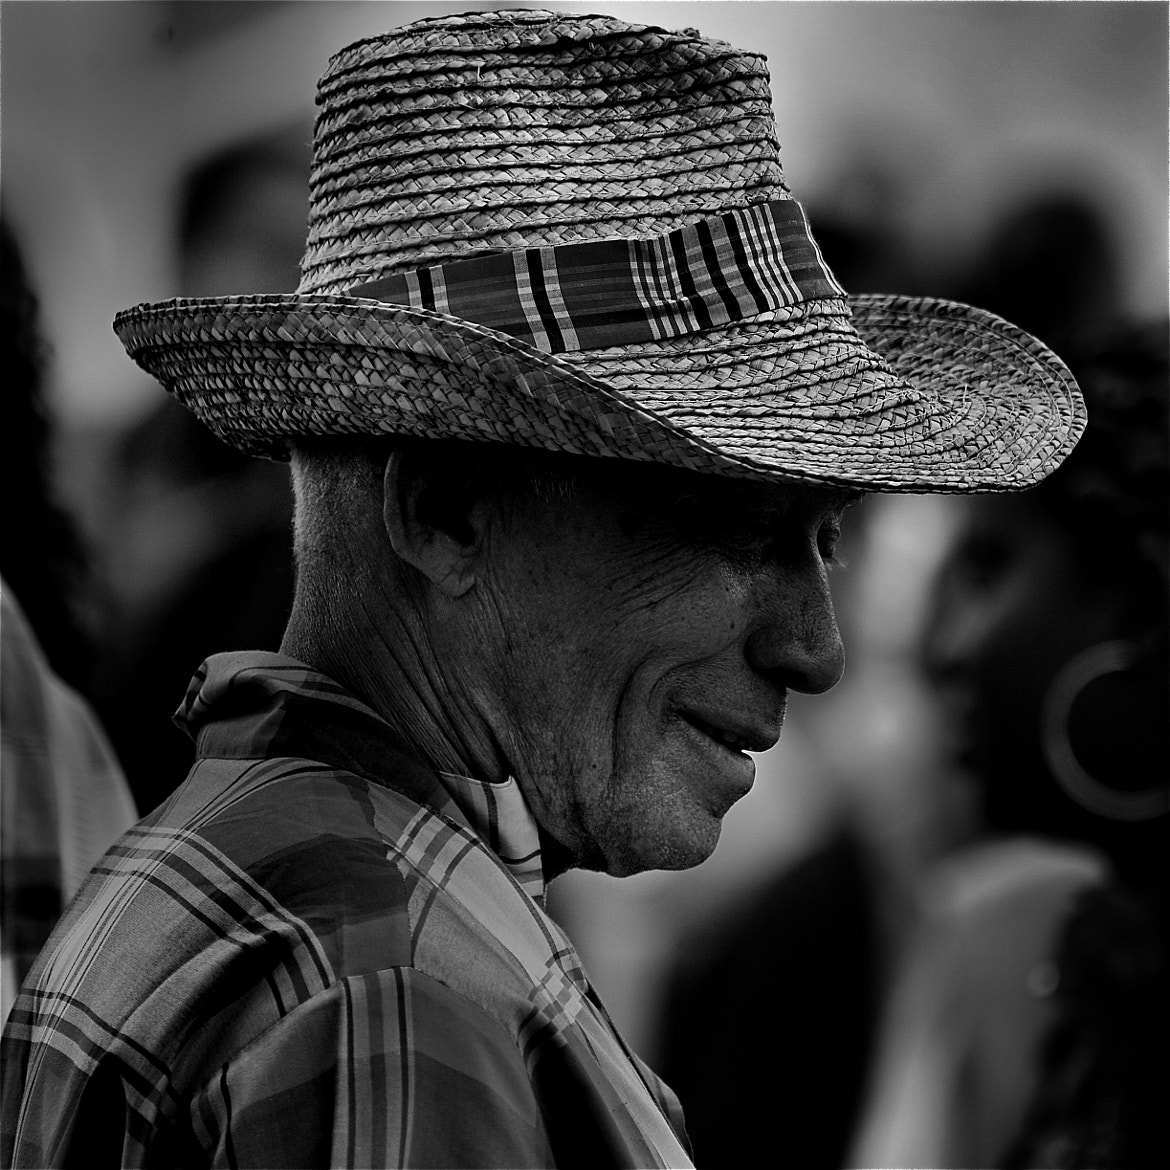 Photograph Straw hat by Guib_Did Didier on 500px